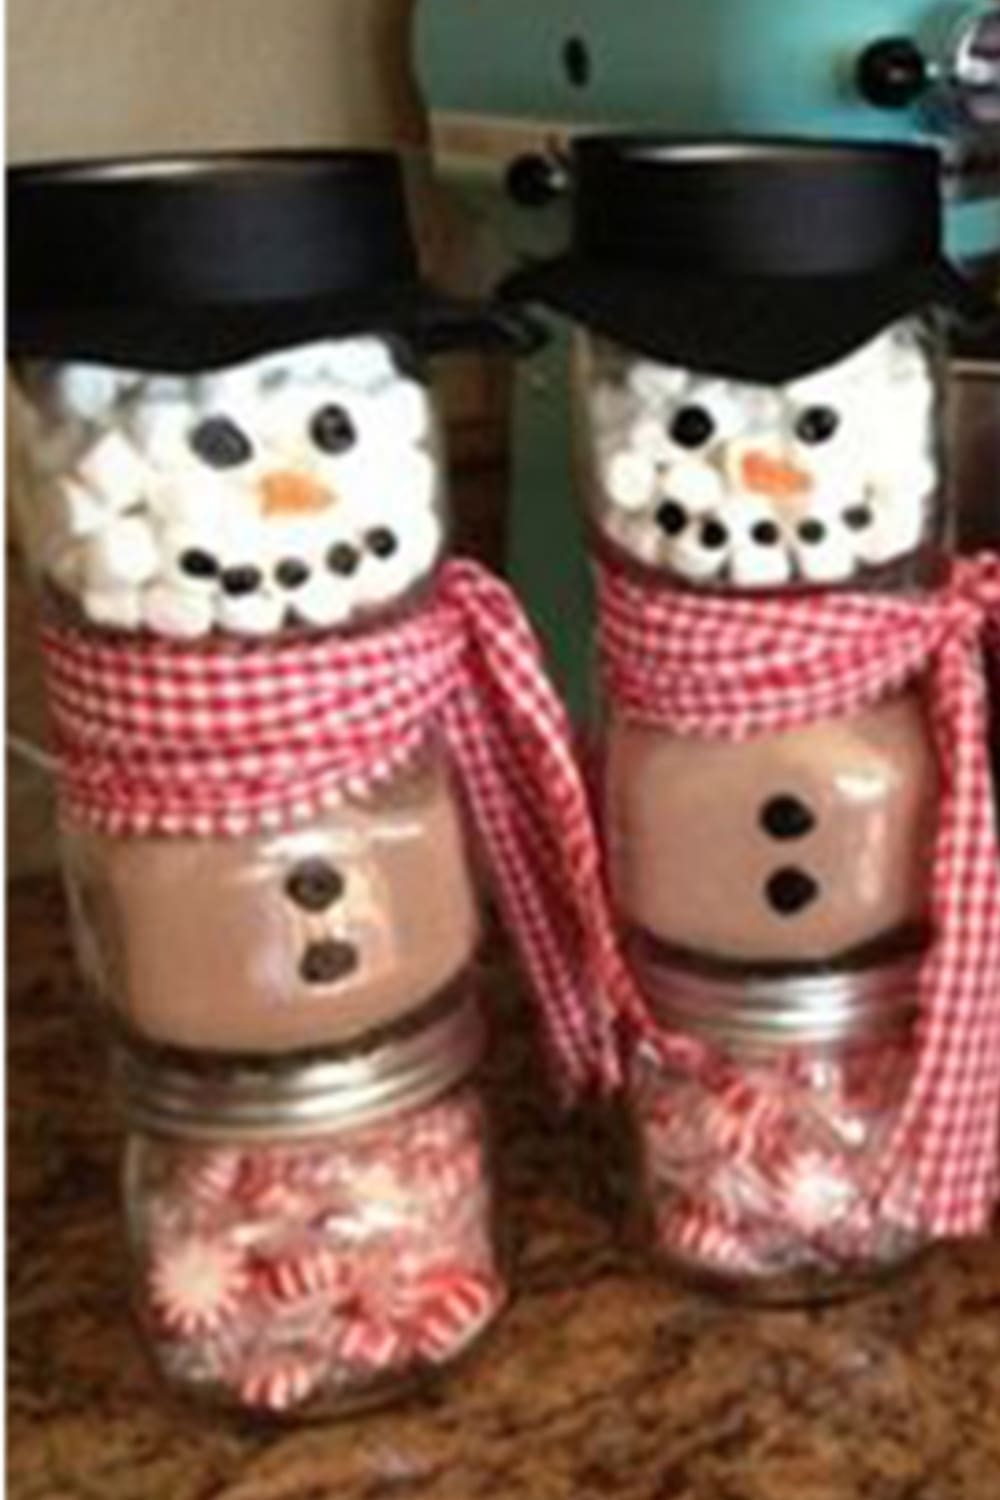 Mason Jar Christmas Gifts and Crafts - Easy Mason Jar Christmas Gift Ideas for Homemade Holiday Gifts for Neighbors, teachers, friends, co-workers and family. Easy DIY Christmas mason jars and Christmas mason jar decorating ideas - how to decorate mason jars for Christmas gifts - DIY Mason Jar Gifts and Cute Mason Jar Ideas For Christmas Presents - Snowmen made out of mason jars